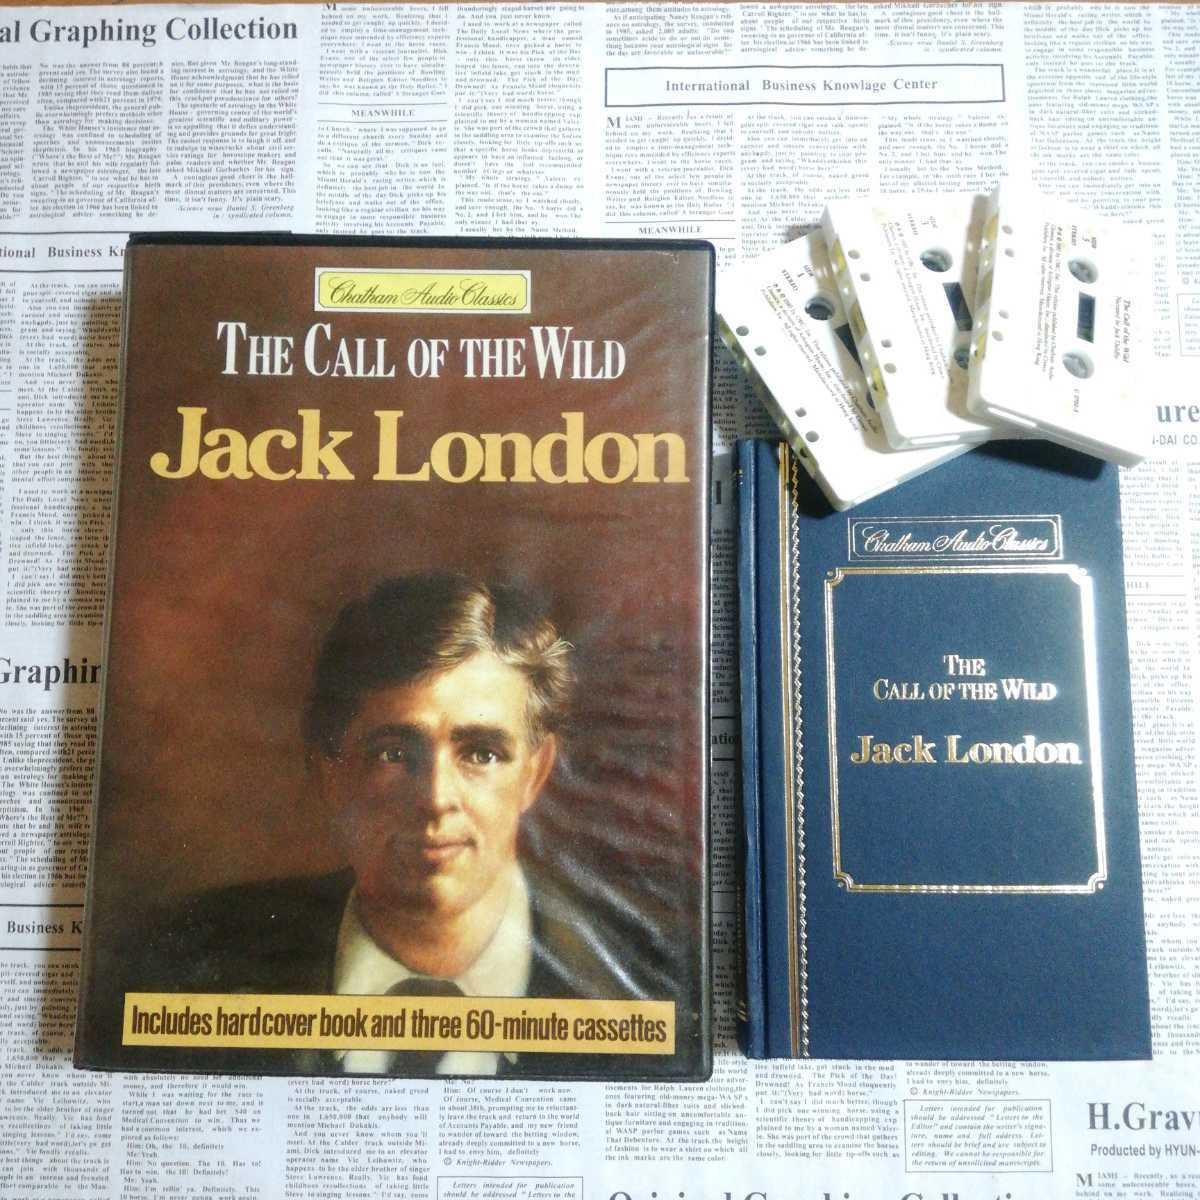 PayPayフリマ|the call of ththee wild jack london 朗読テープ付き ...